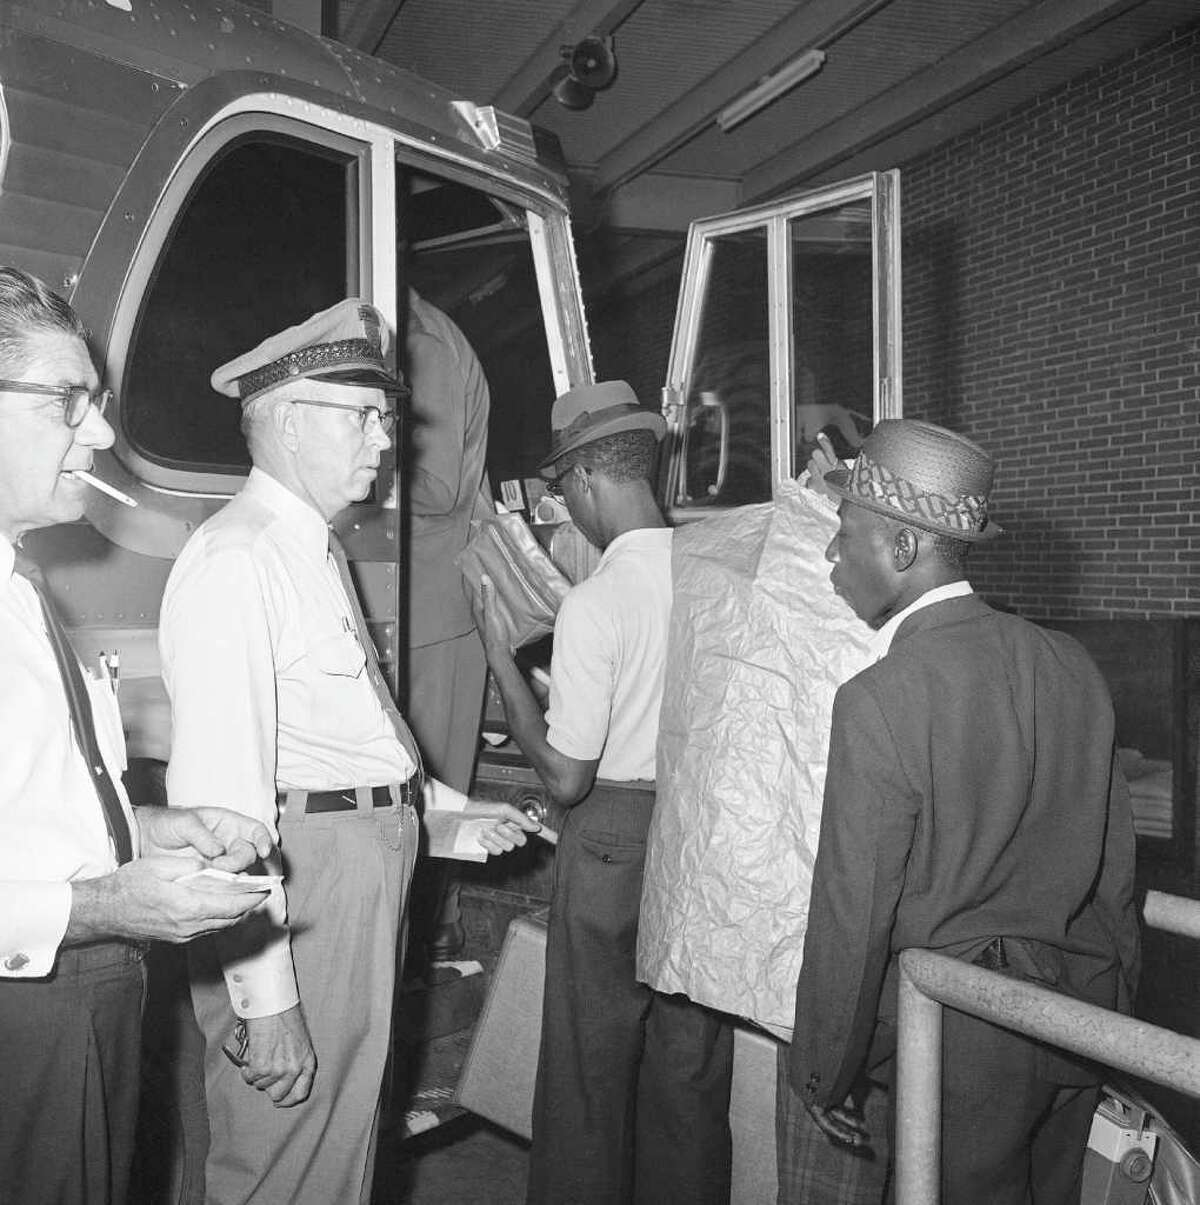 Four of the nine reverse Freedom Riders board bus in New Orleans, en route for Boston and Concord, N.H. with one-way tickets paid for by the New Orleans Citizens Council, July 6, 1962. They are due to arrive in Boston on Sunday at 1:30 p.m. Bus driver is O.E. Coleman of Columbus, Ga.